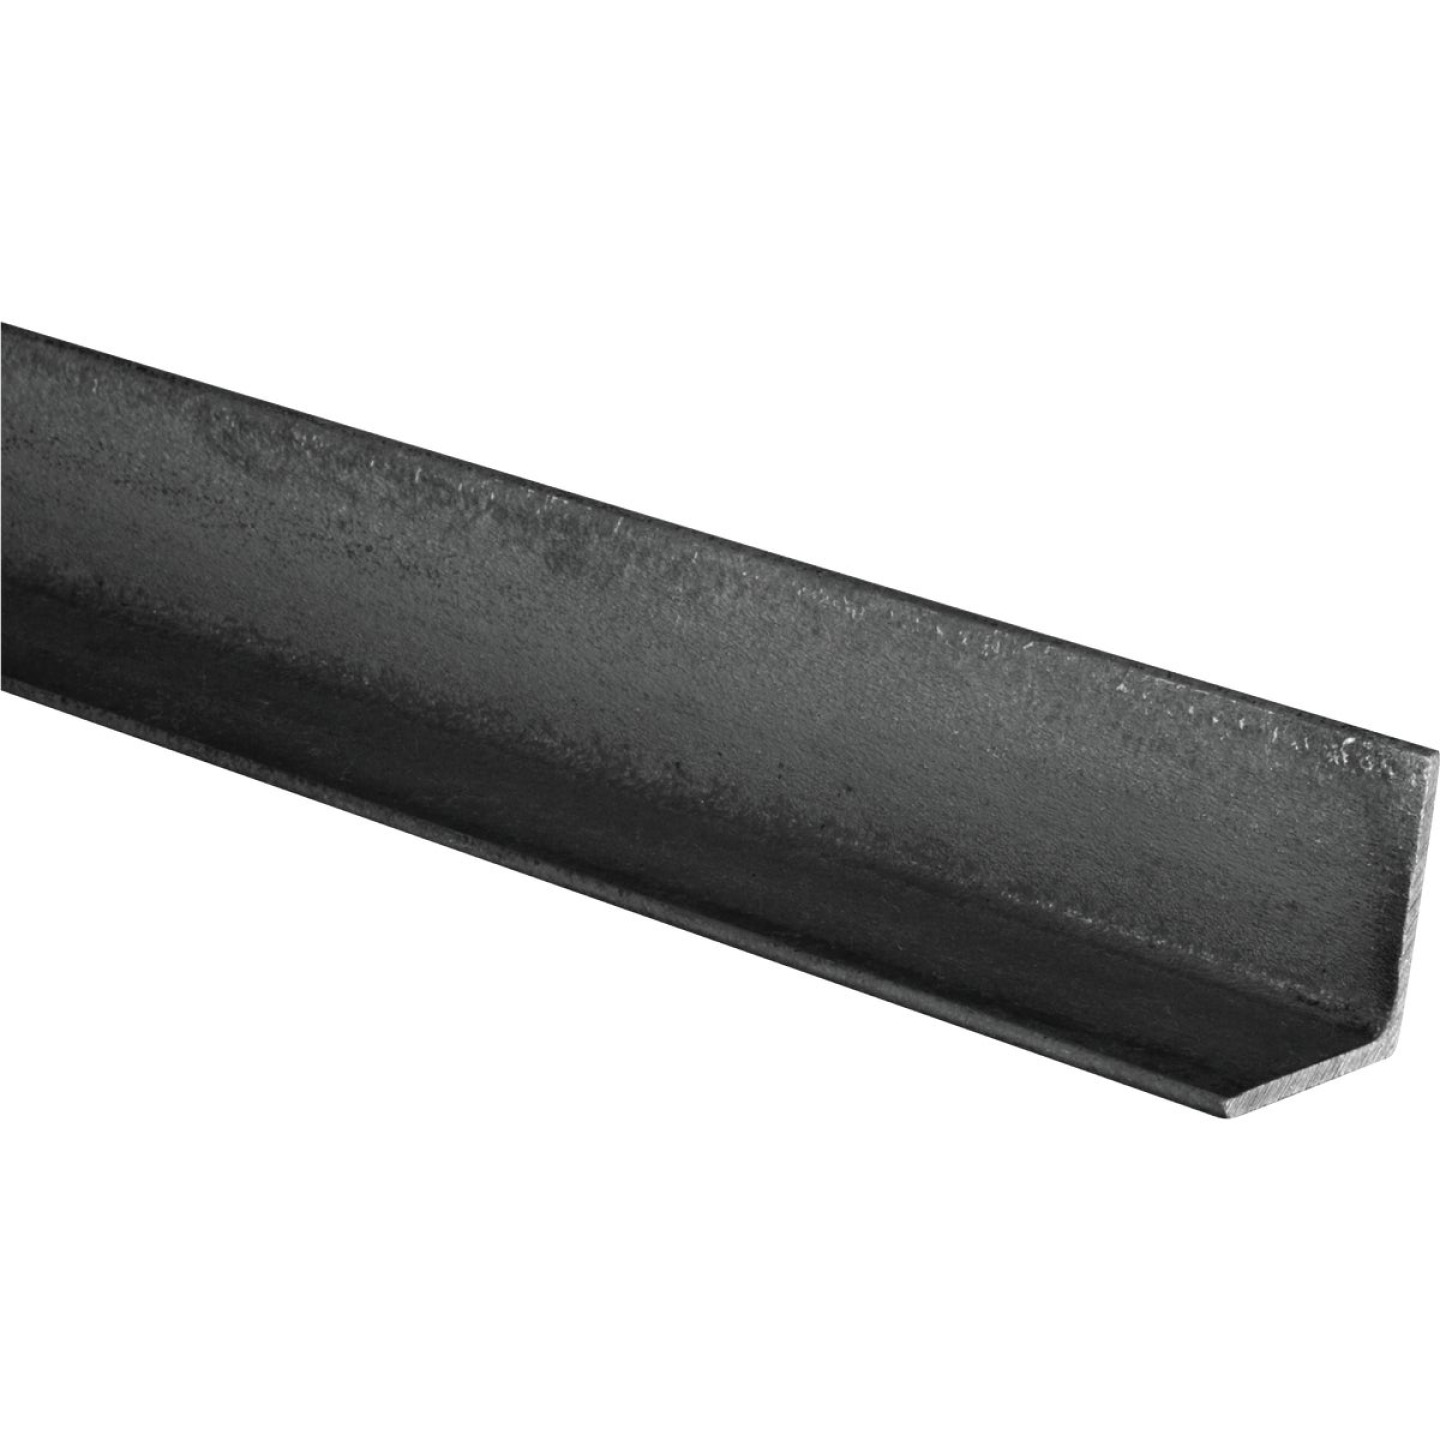 HILLMAN Steelworks Plain 1 In. x 4 Ft., 1/8 In. Weldable Solid Angle Image 1